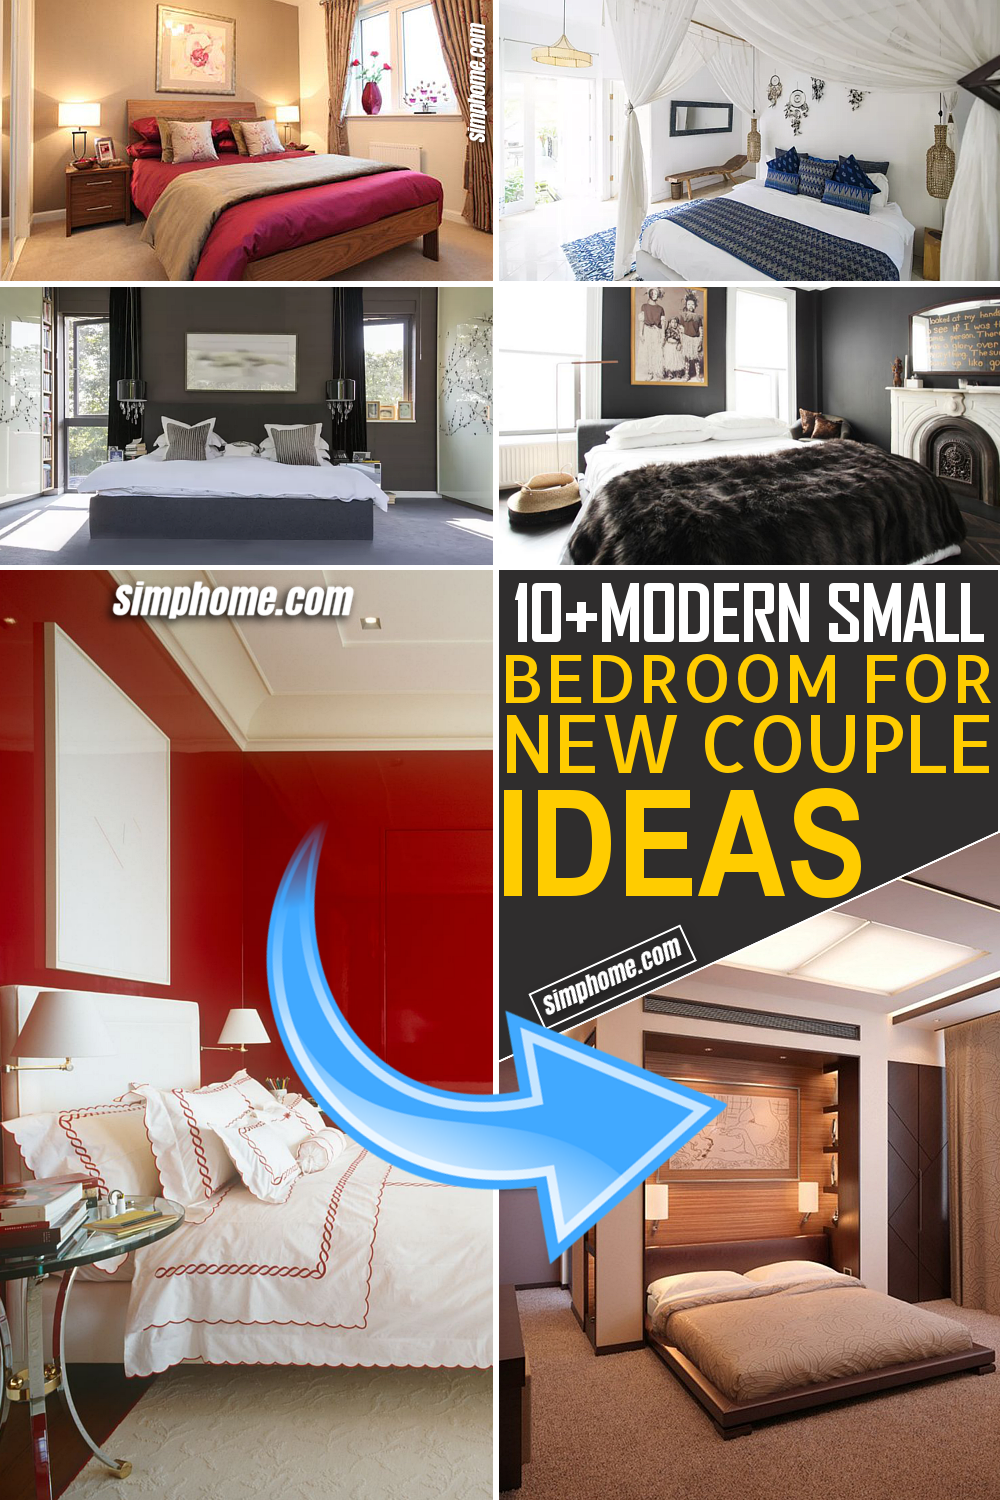 Simphome.com 10 Modern Small Bedroom ideas For New Couples